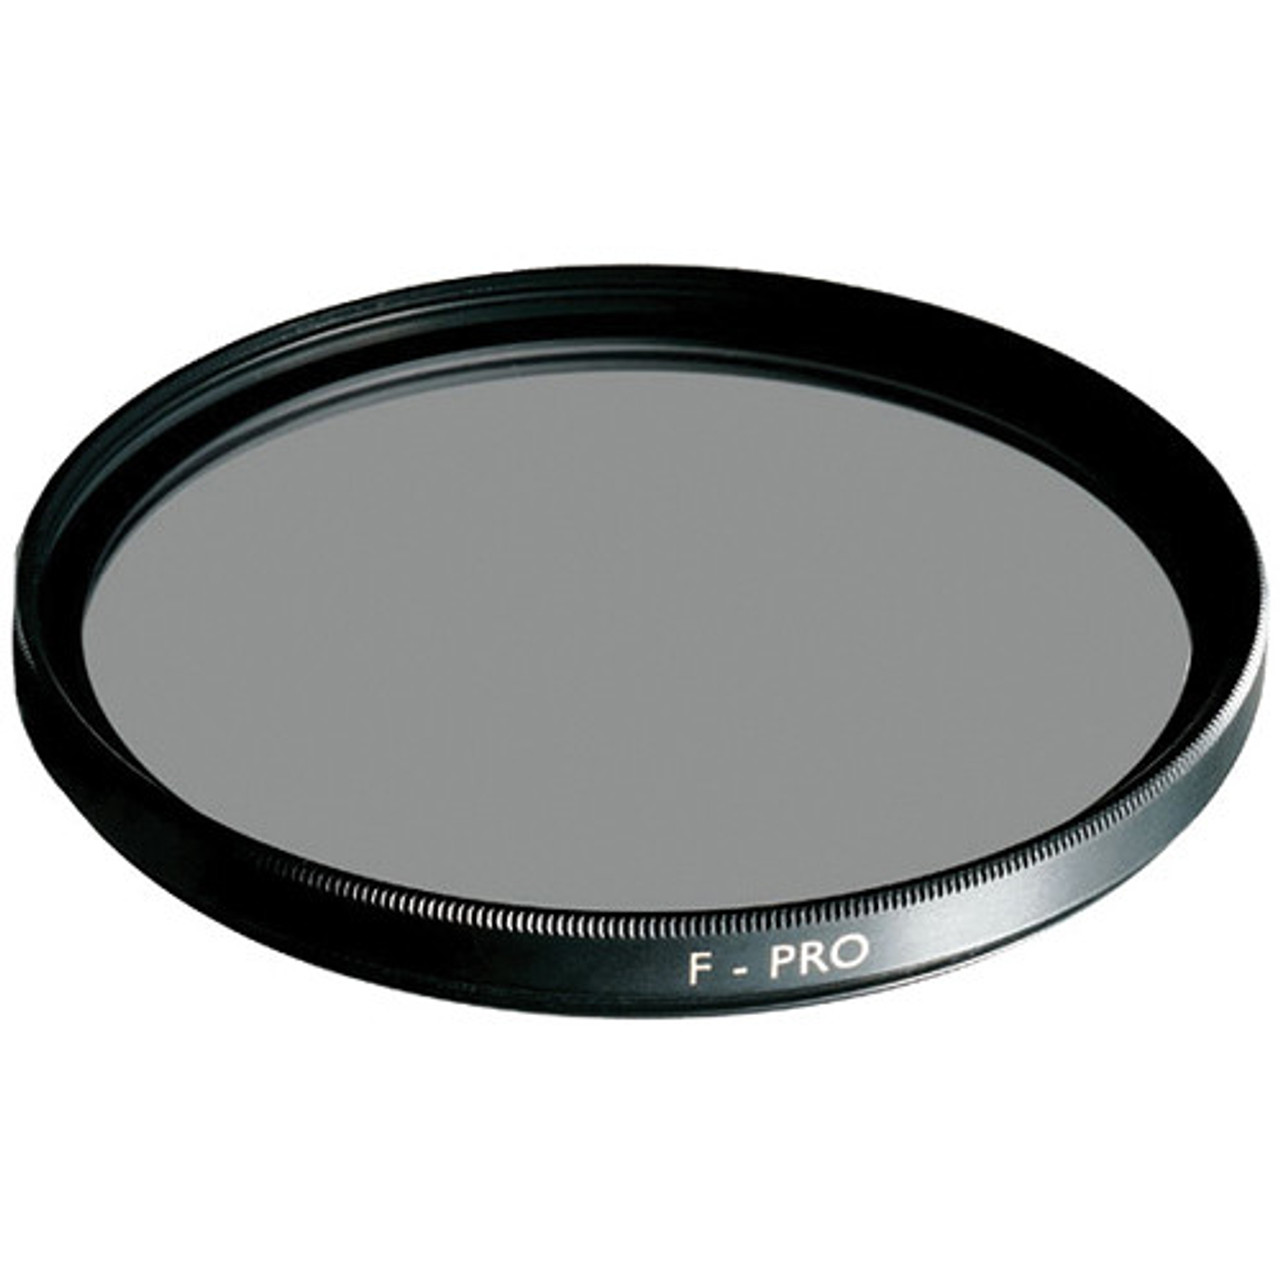 B+W 39mm ND 0.9-8X with Single Coating 103